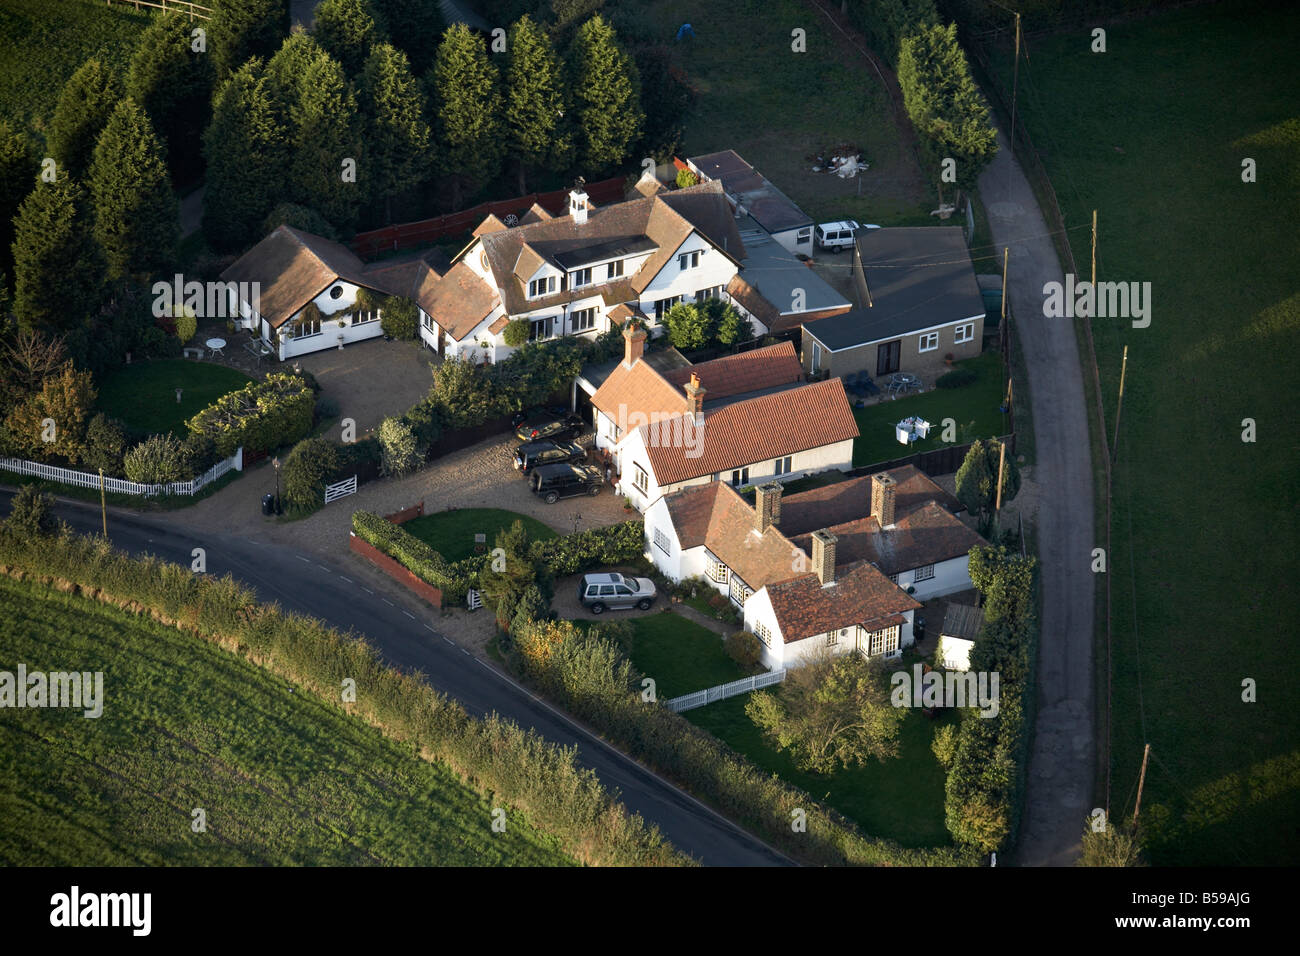 Aerial view north east of country houses conifer trees New Road Lambourne Romford Epping Forest London RM4 England - Stock Image